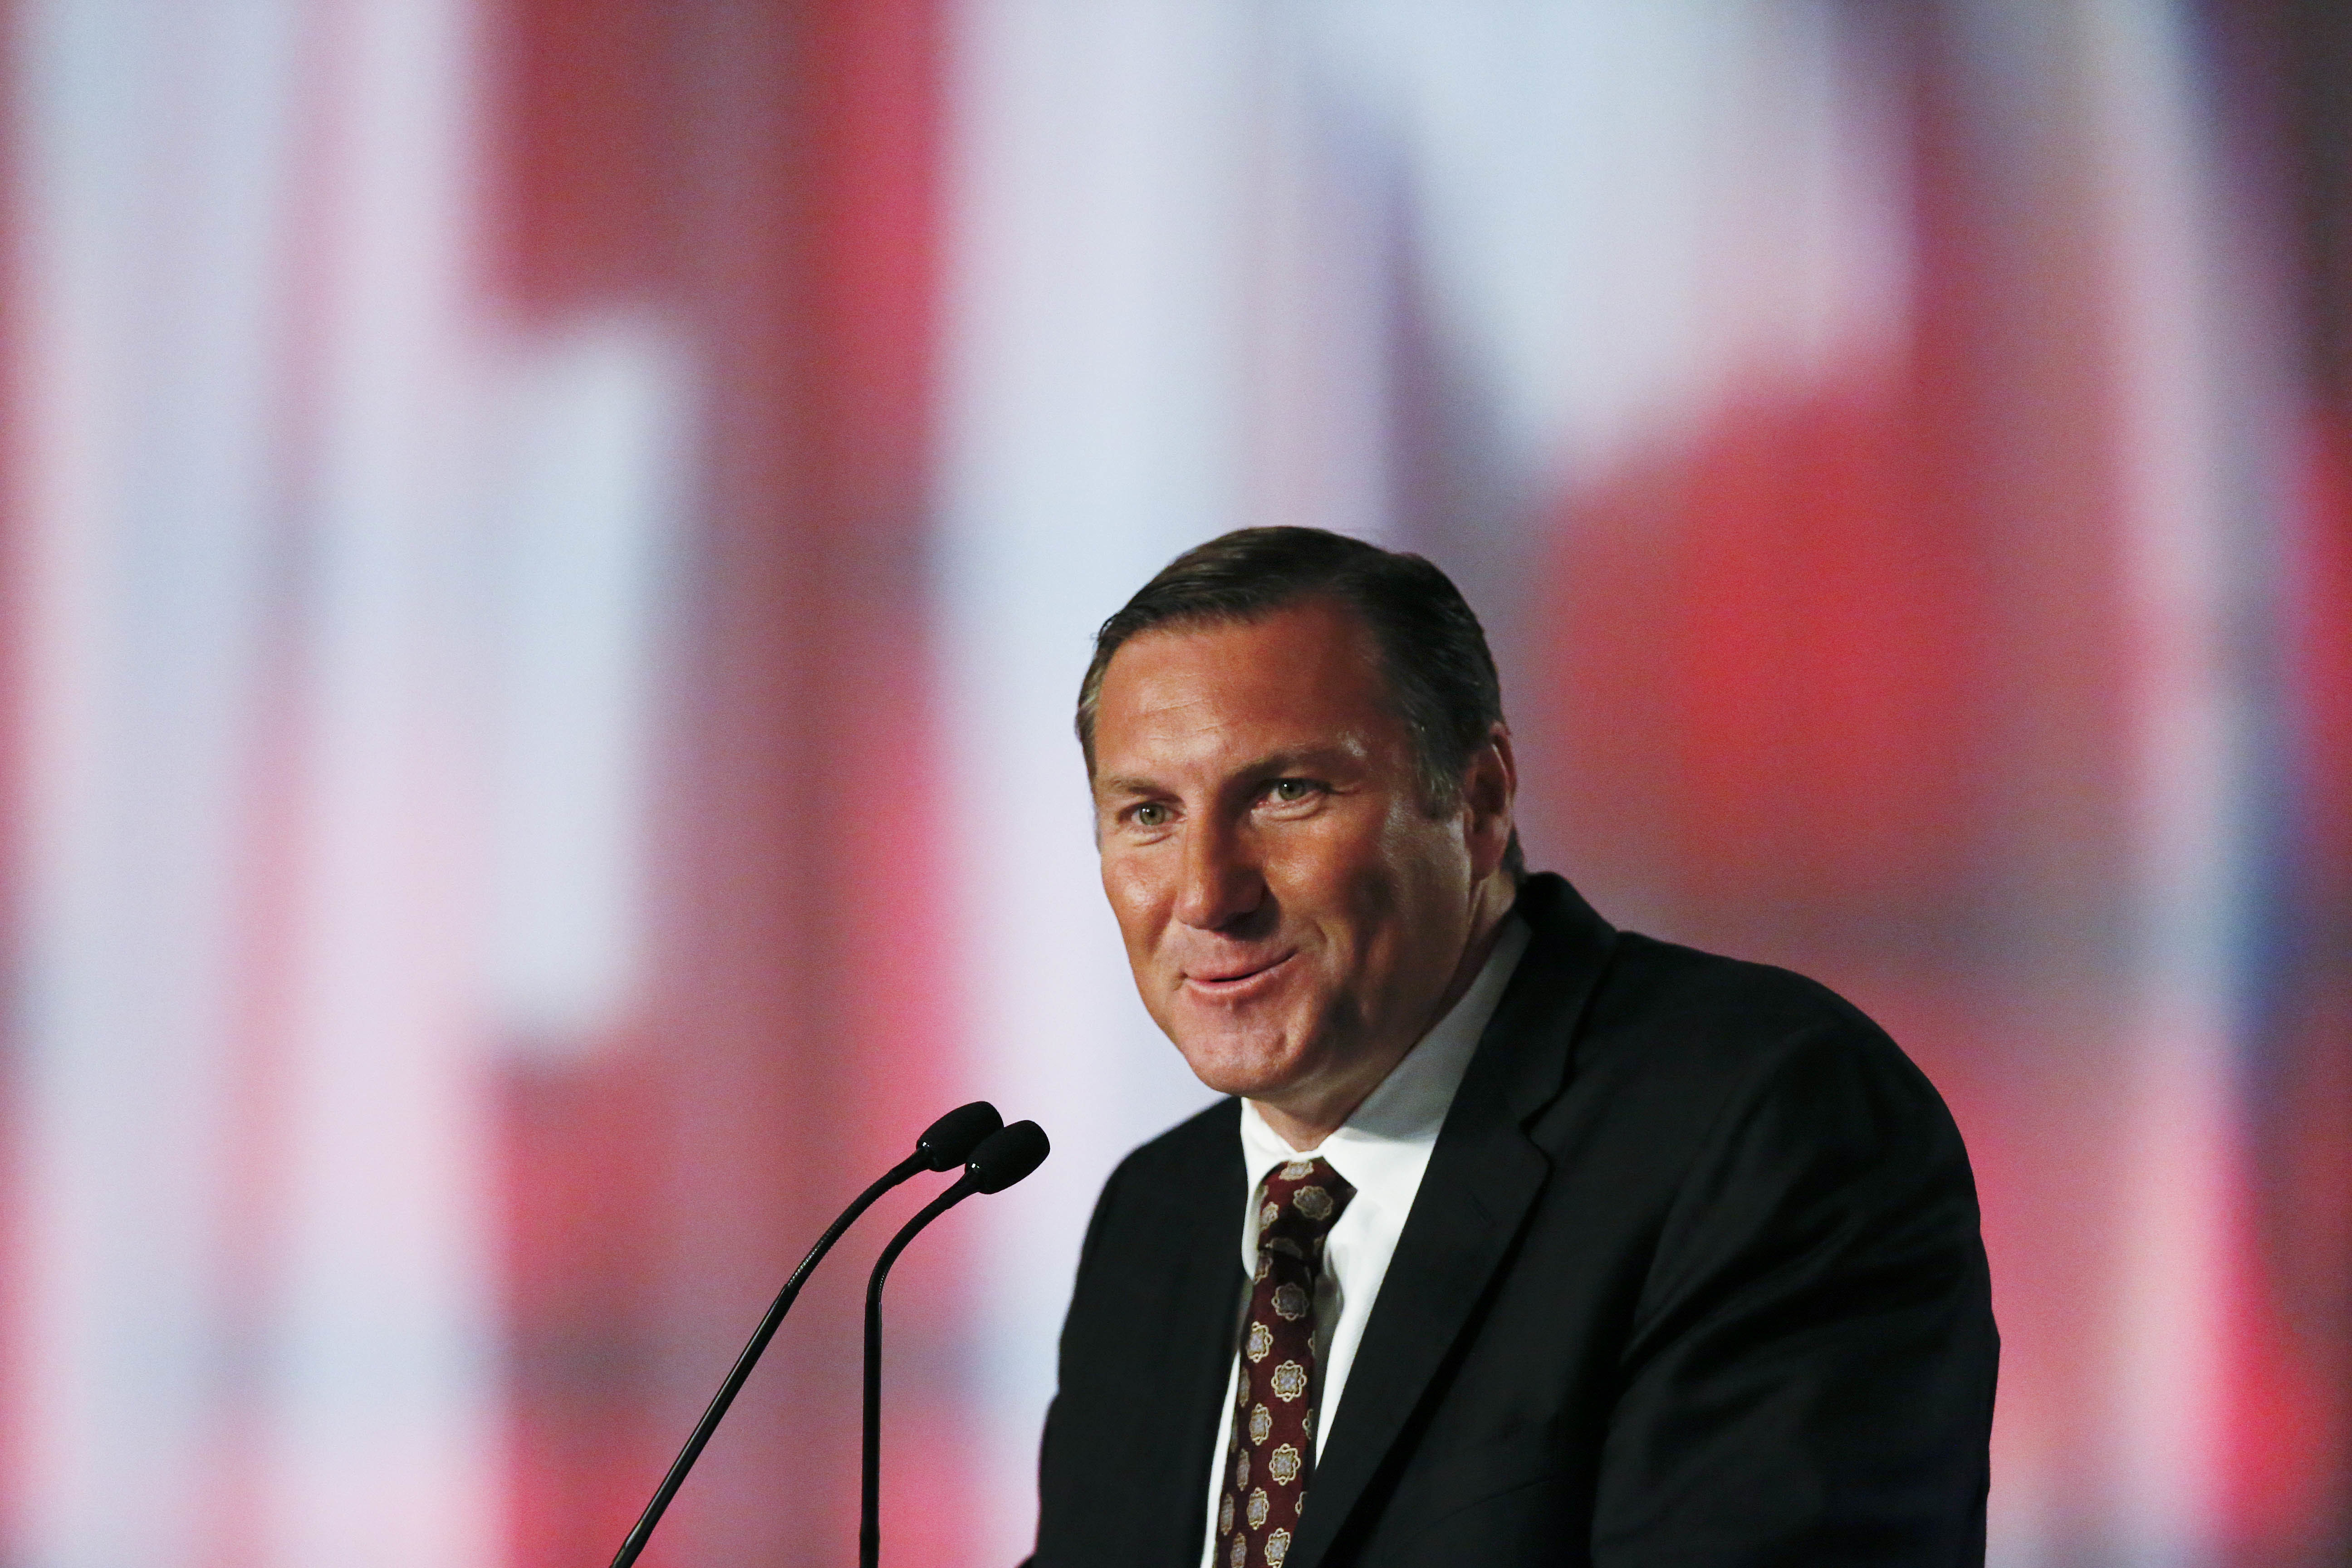 Mississippi State coach Dan Mullen speaks to the media at the Southeastern Conference NCAA college football media days, Tuesday, July 12, 2016, in Hoover, Ala. (AP Photo/Brynn Anderson)